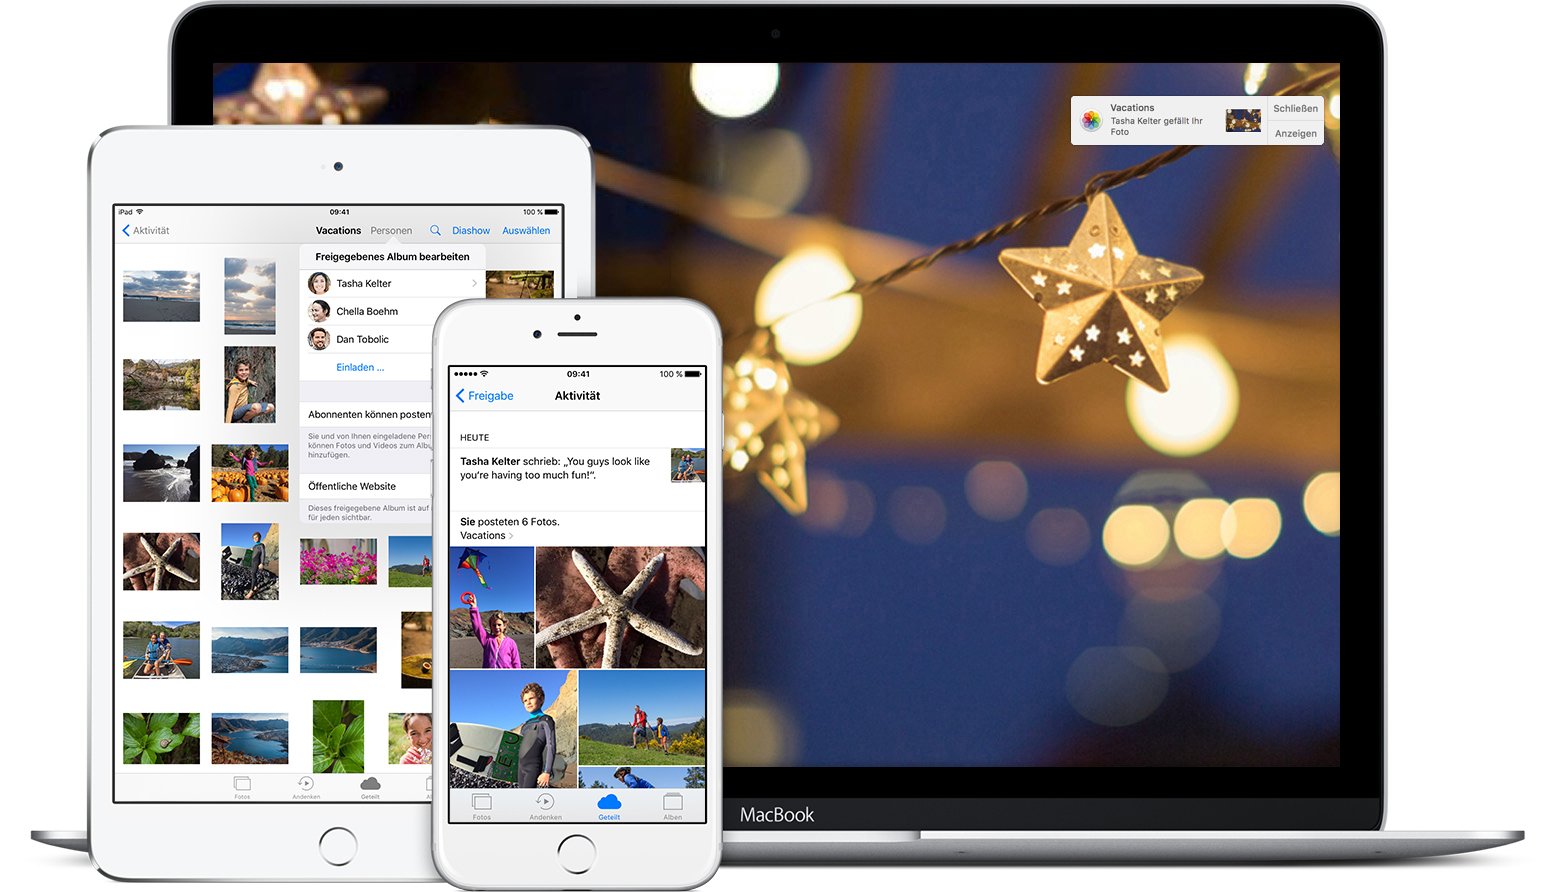 Shared photos on iphone ICloud: Create a shared album with iCloud Photo Sharing